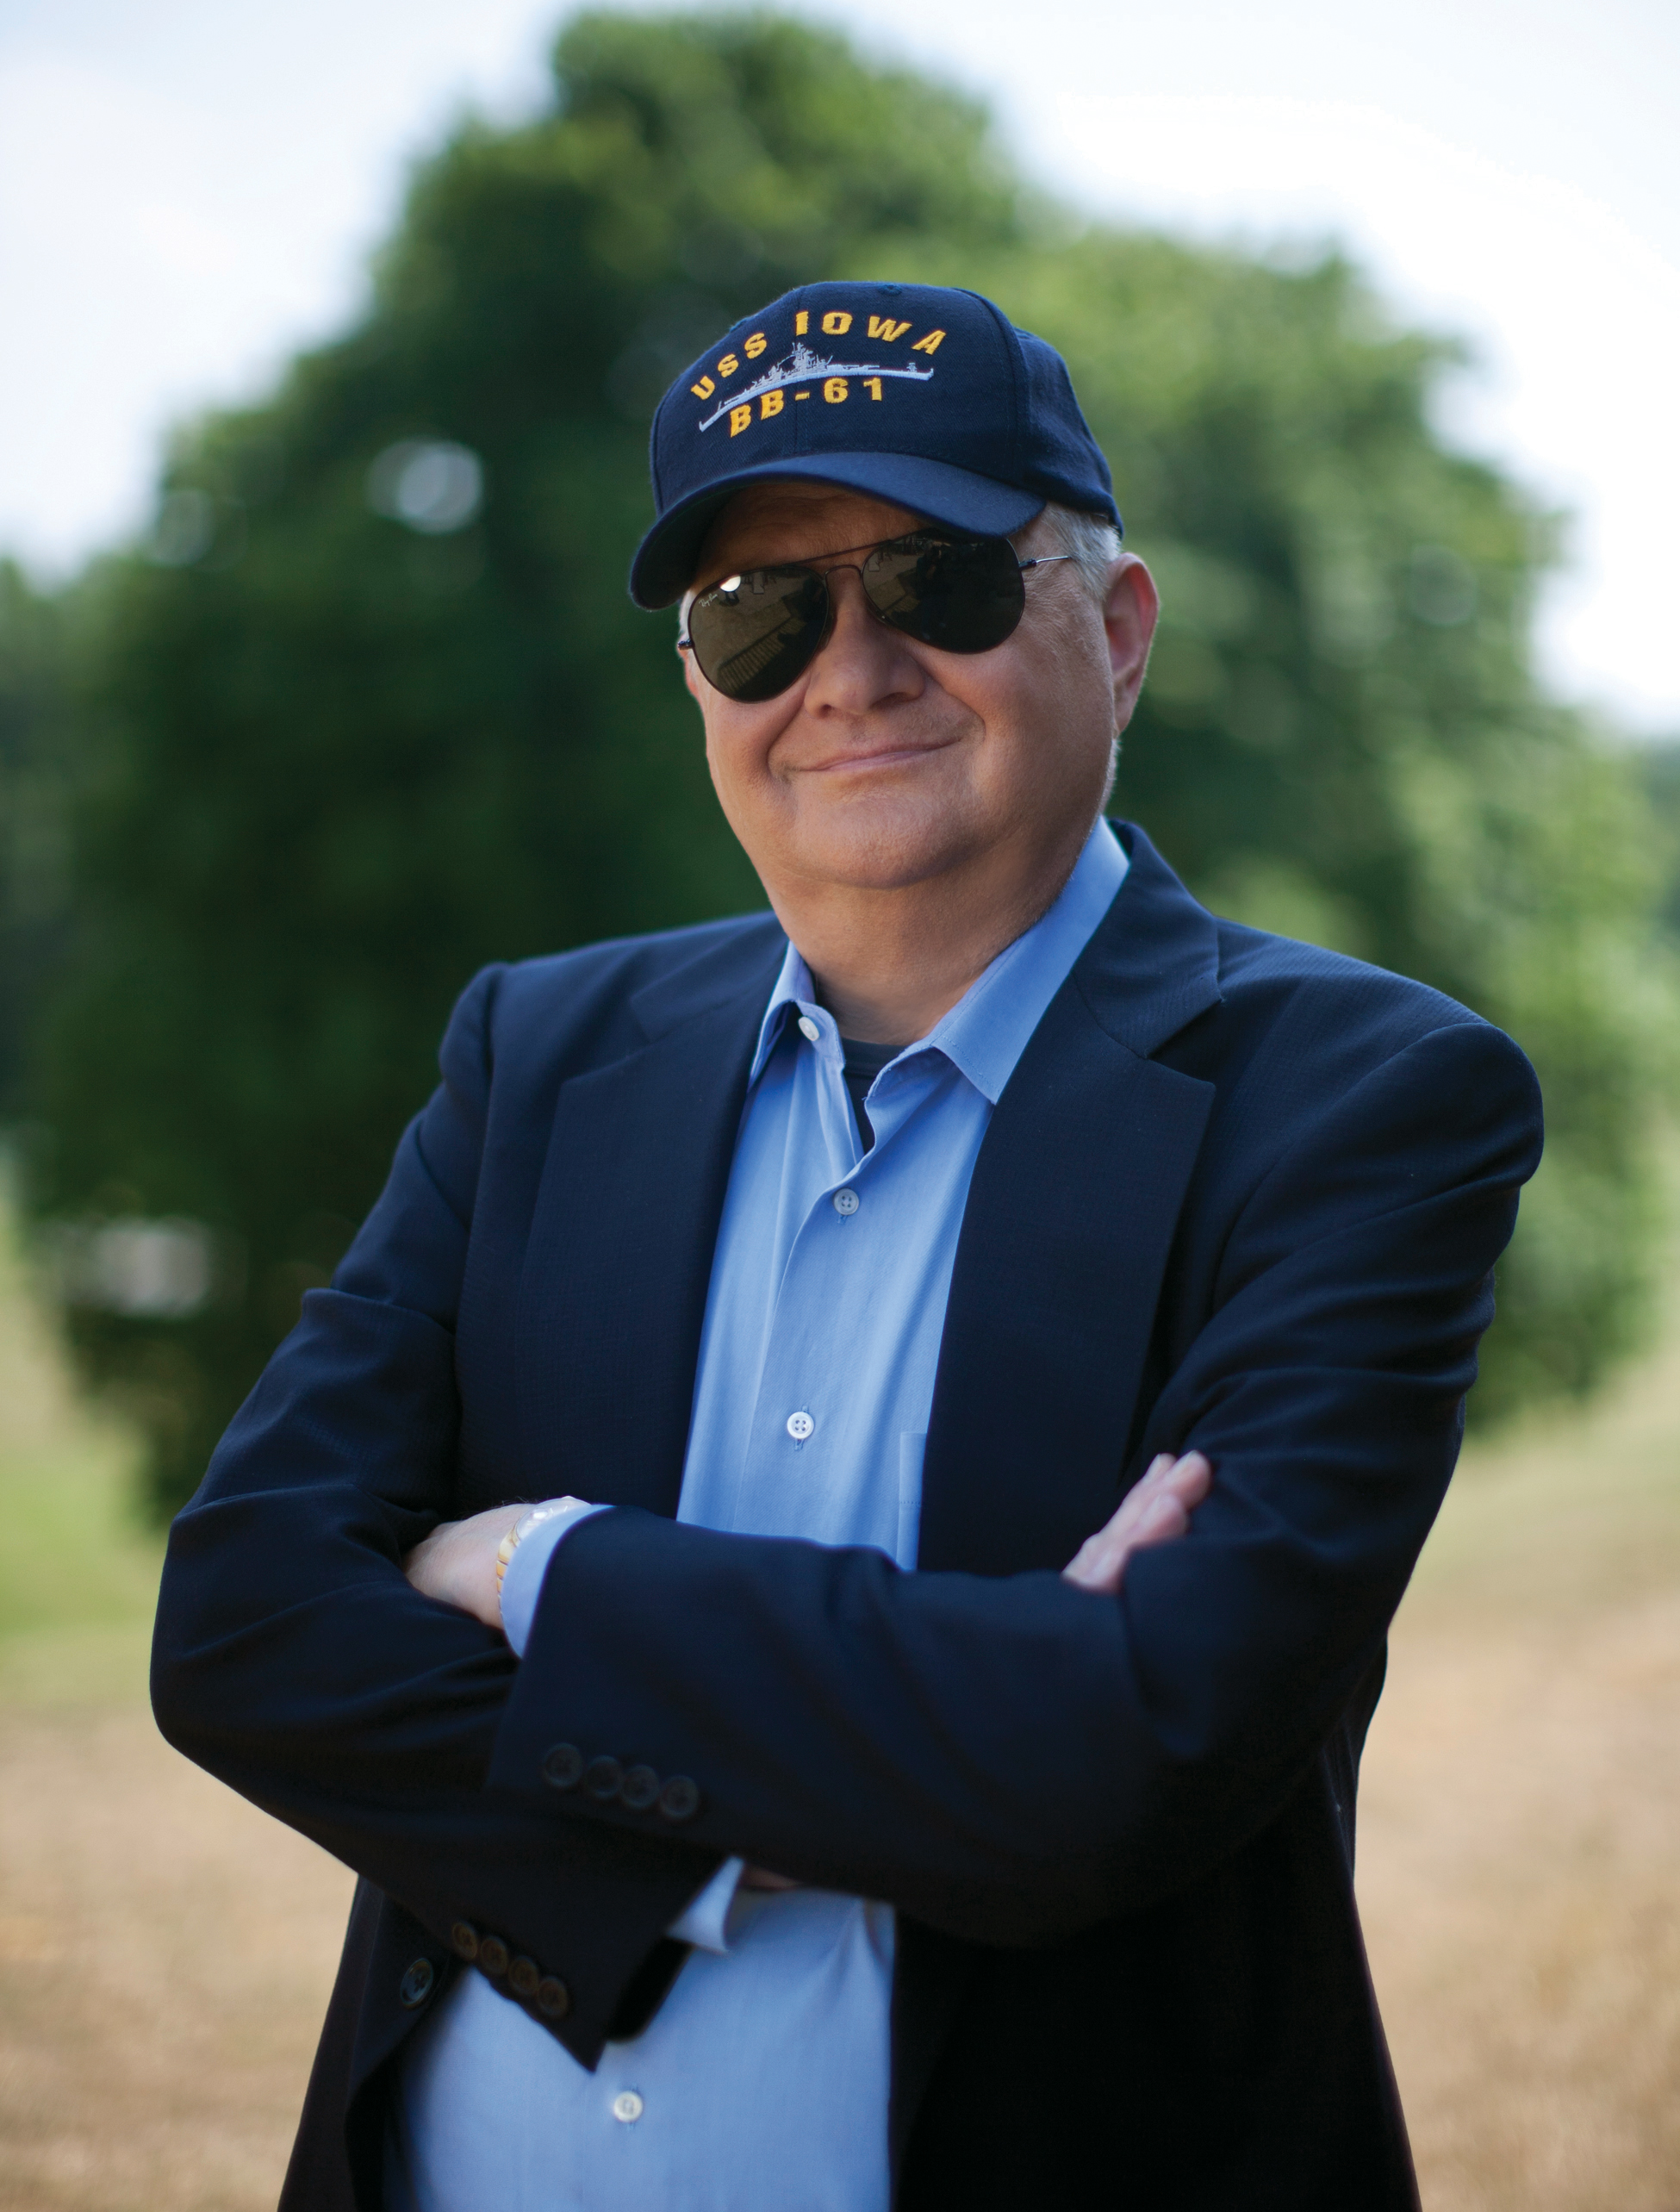 """Tom Clancy, the bestselling author of """"The Hunt for Red October"""" and other wildly successful technological thrillers, died Tuesday in Baltimore. The publisher did not disclose a cause of death. (AP Photo/G.P. Putnam Sons, David Burnett.)"""